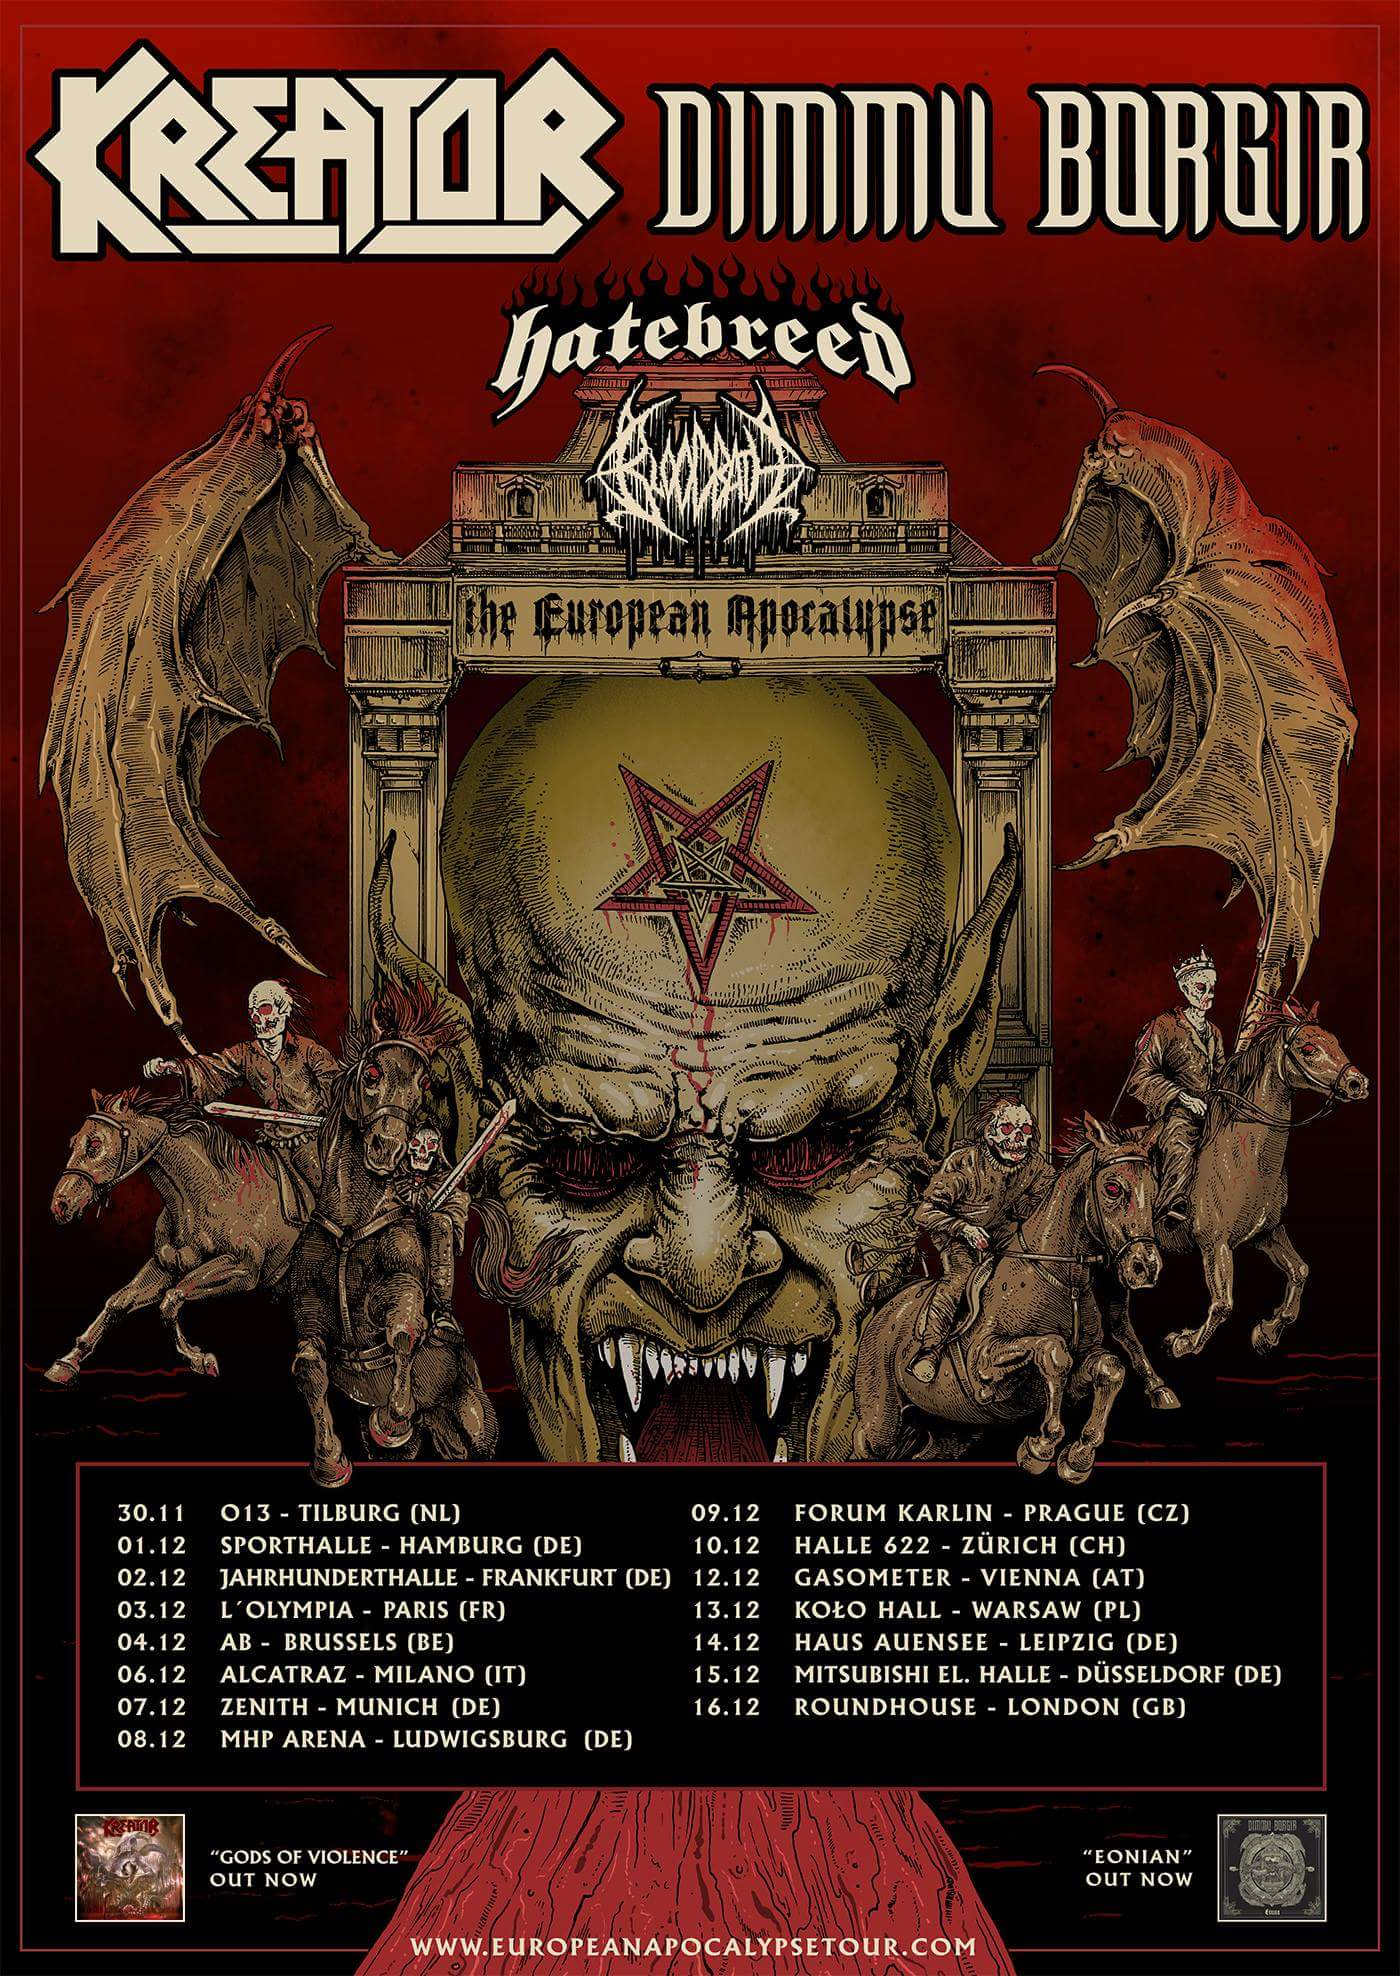 Kreator, Dimmu Borgir, Bloodbath, Hatebreed - The European Apocalypse